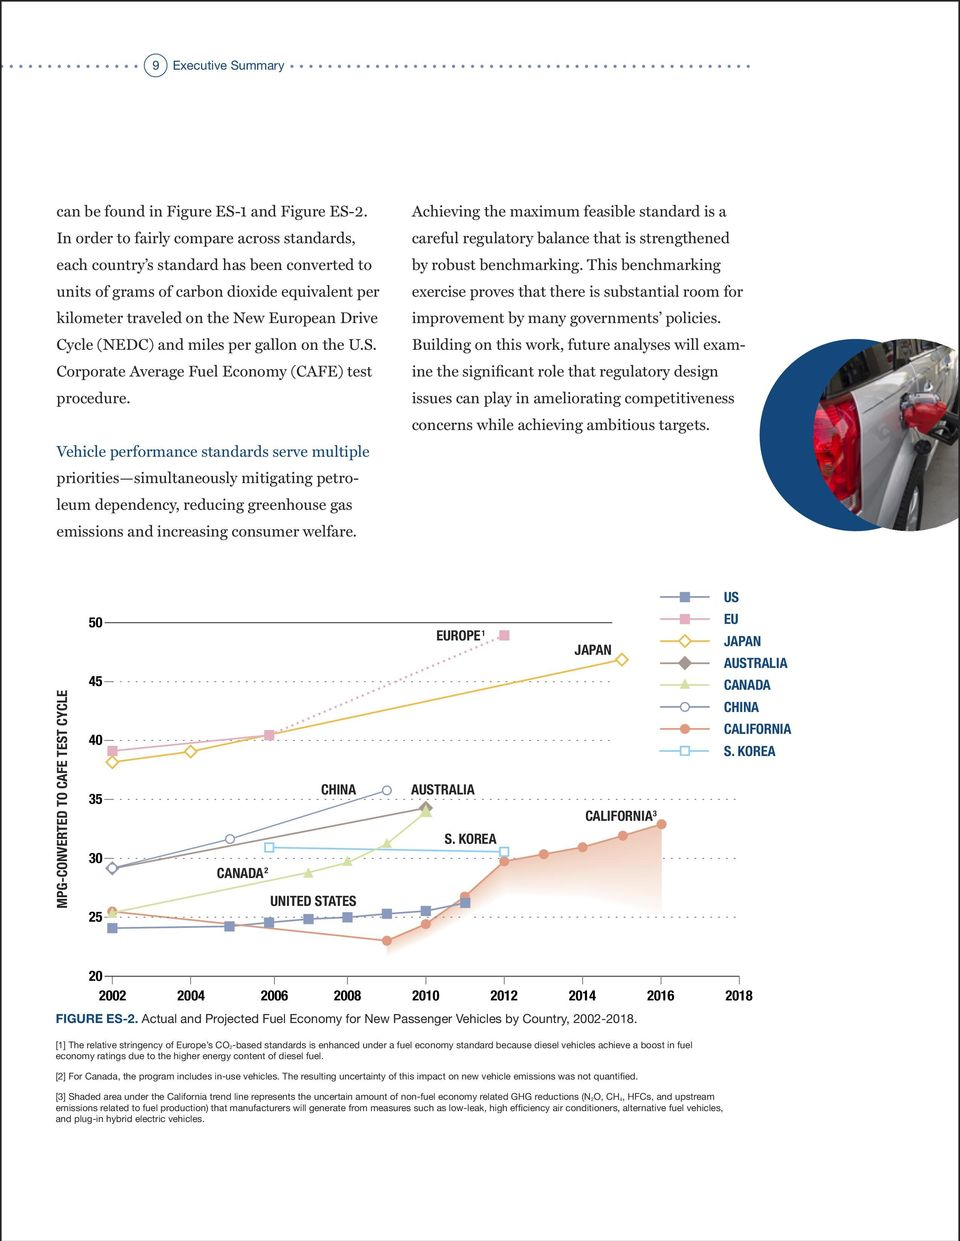 and miles per gallon on the U.S. Corporate Average Fuel Economy (CAFE) test procedure.